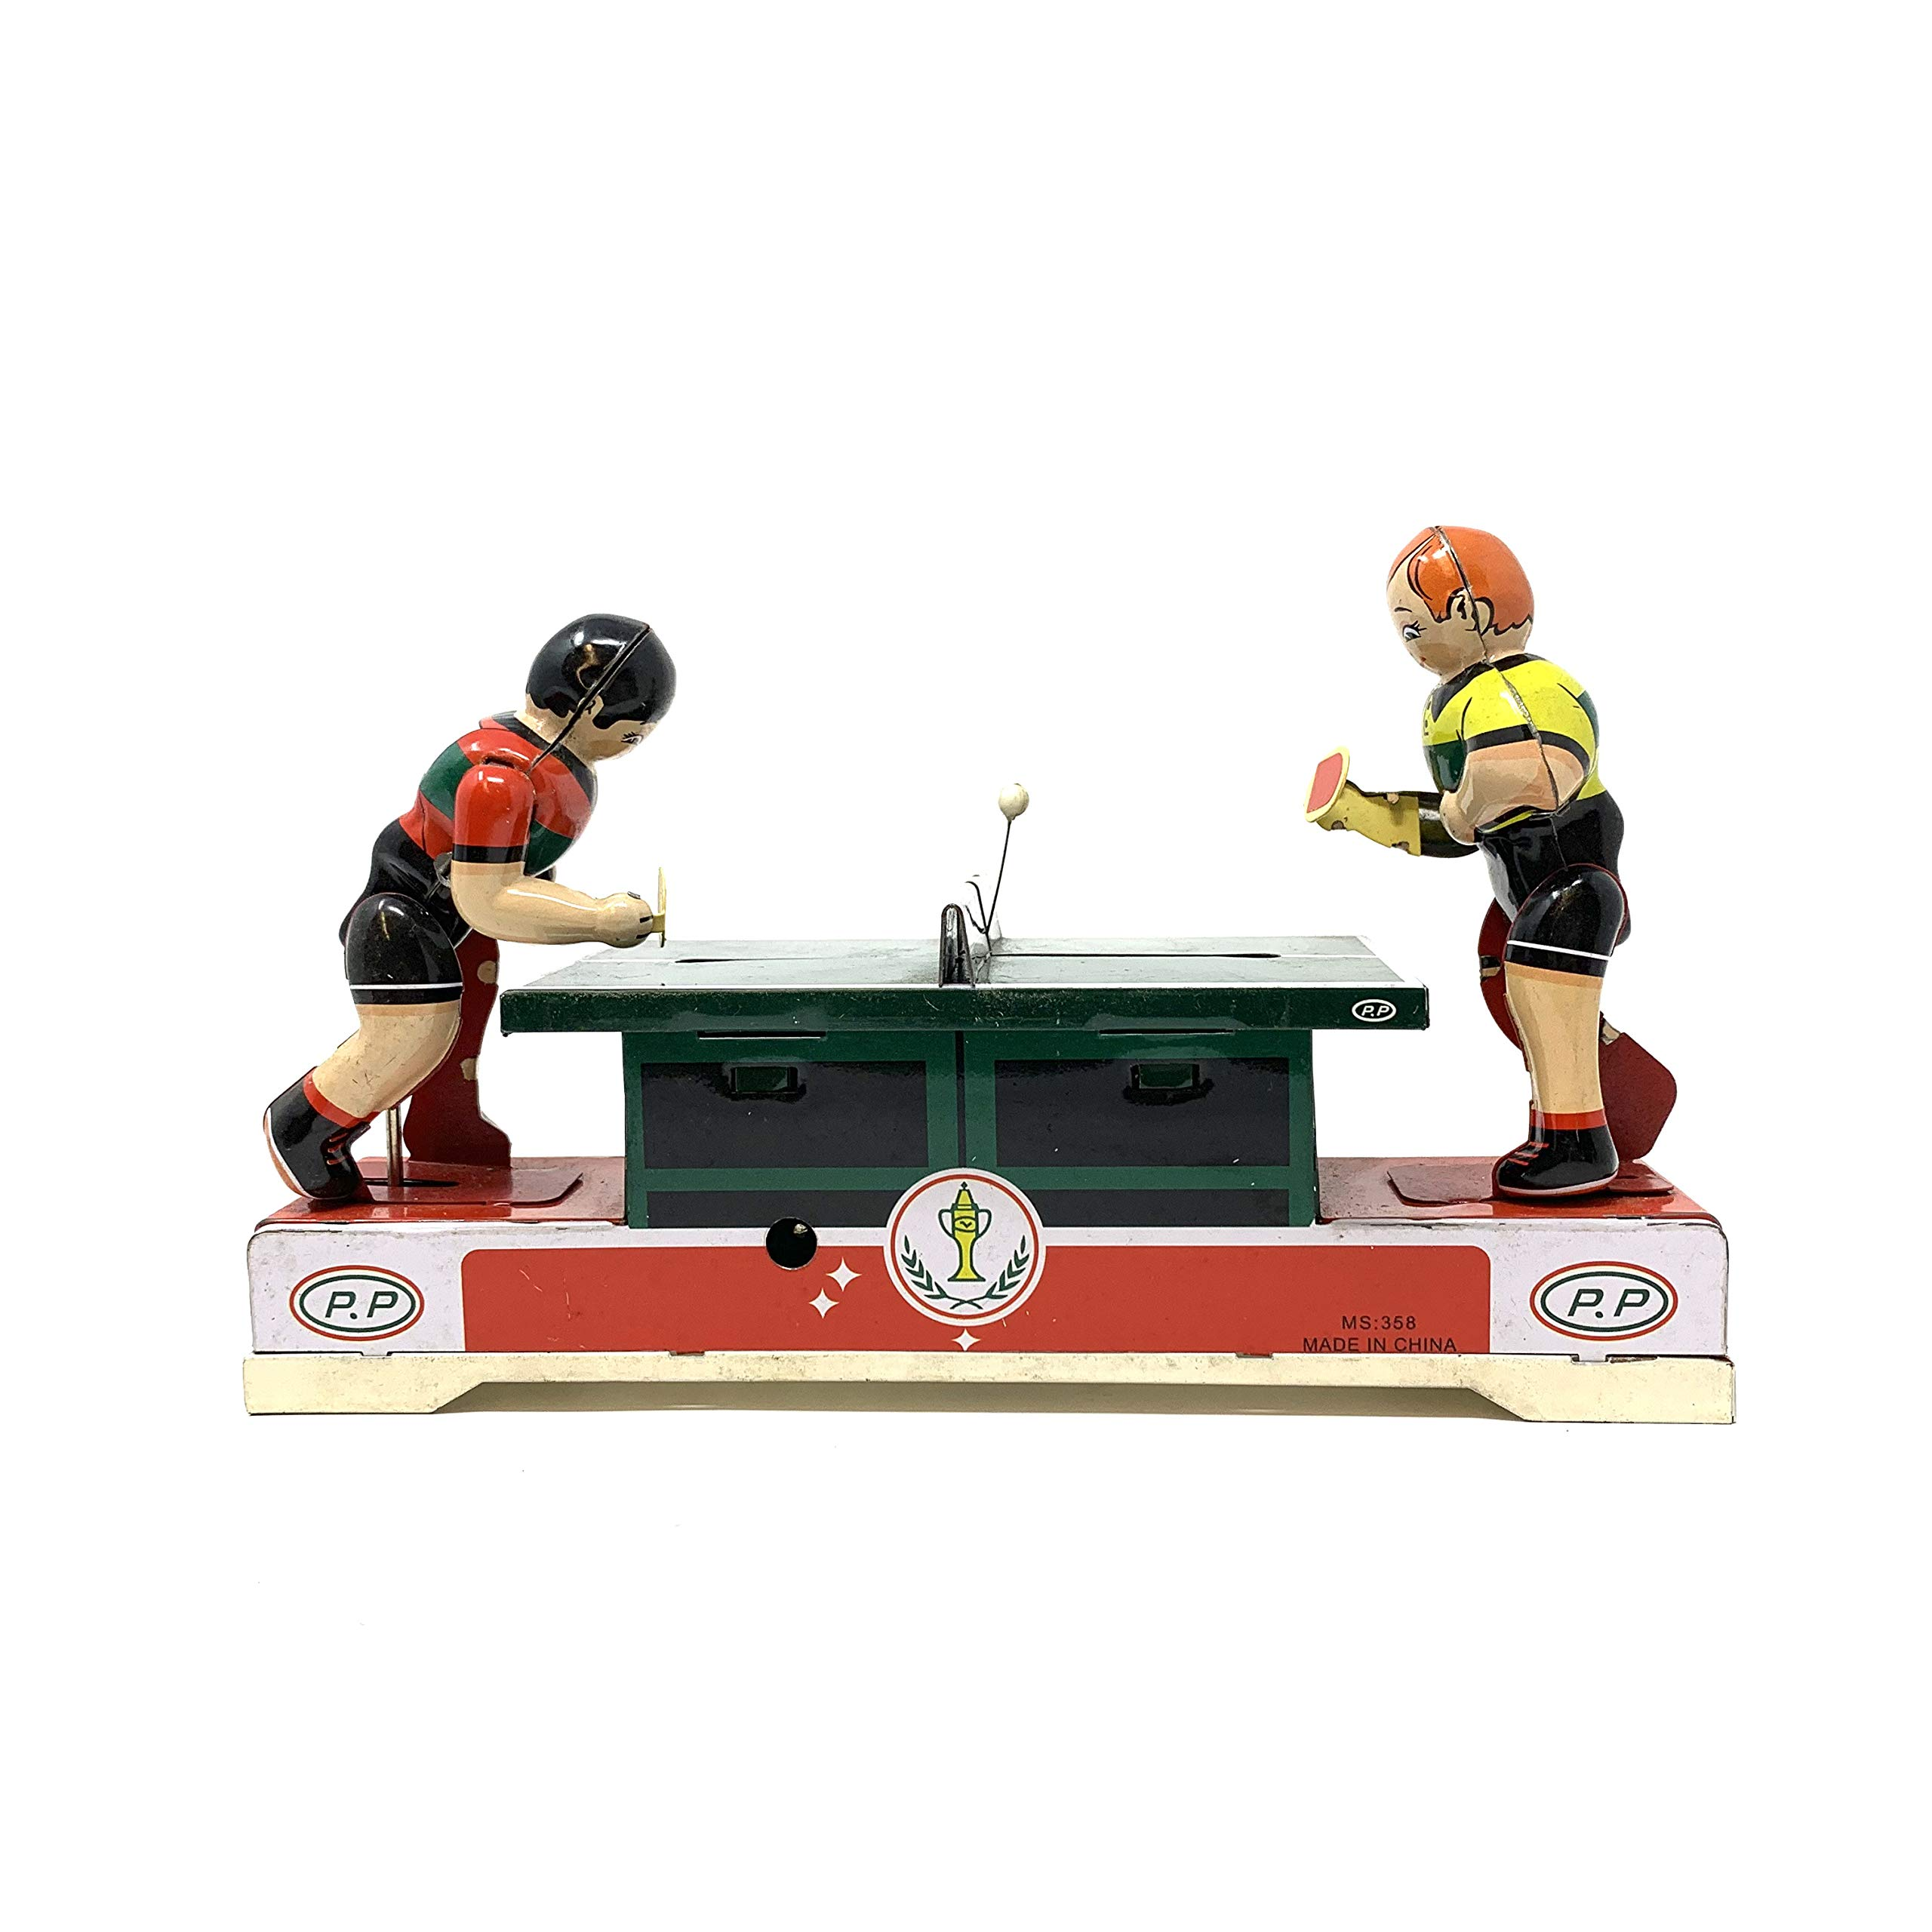 Off the Wall Toys Vintage Windup Ping Pong Match Souvenir Clockwork Collectable Tinplate Toy